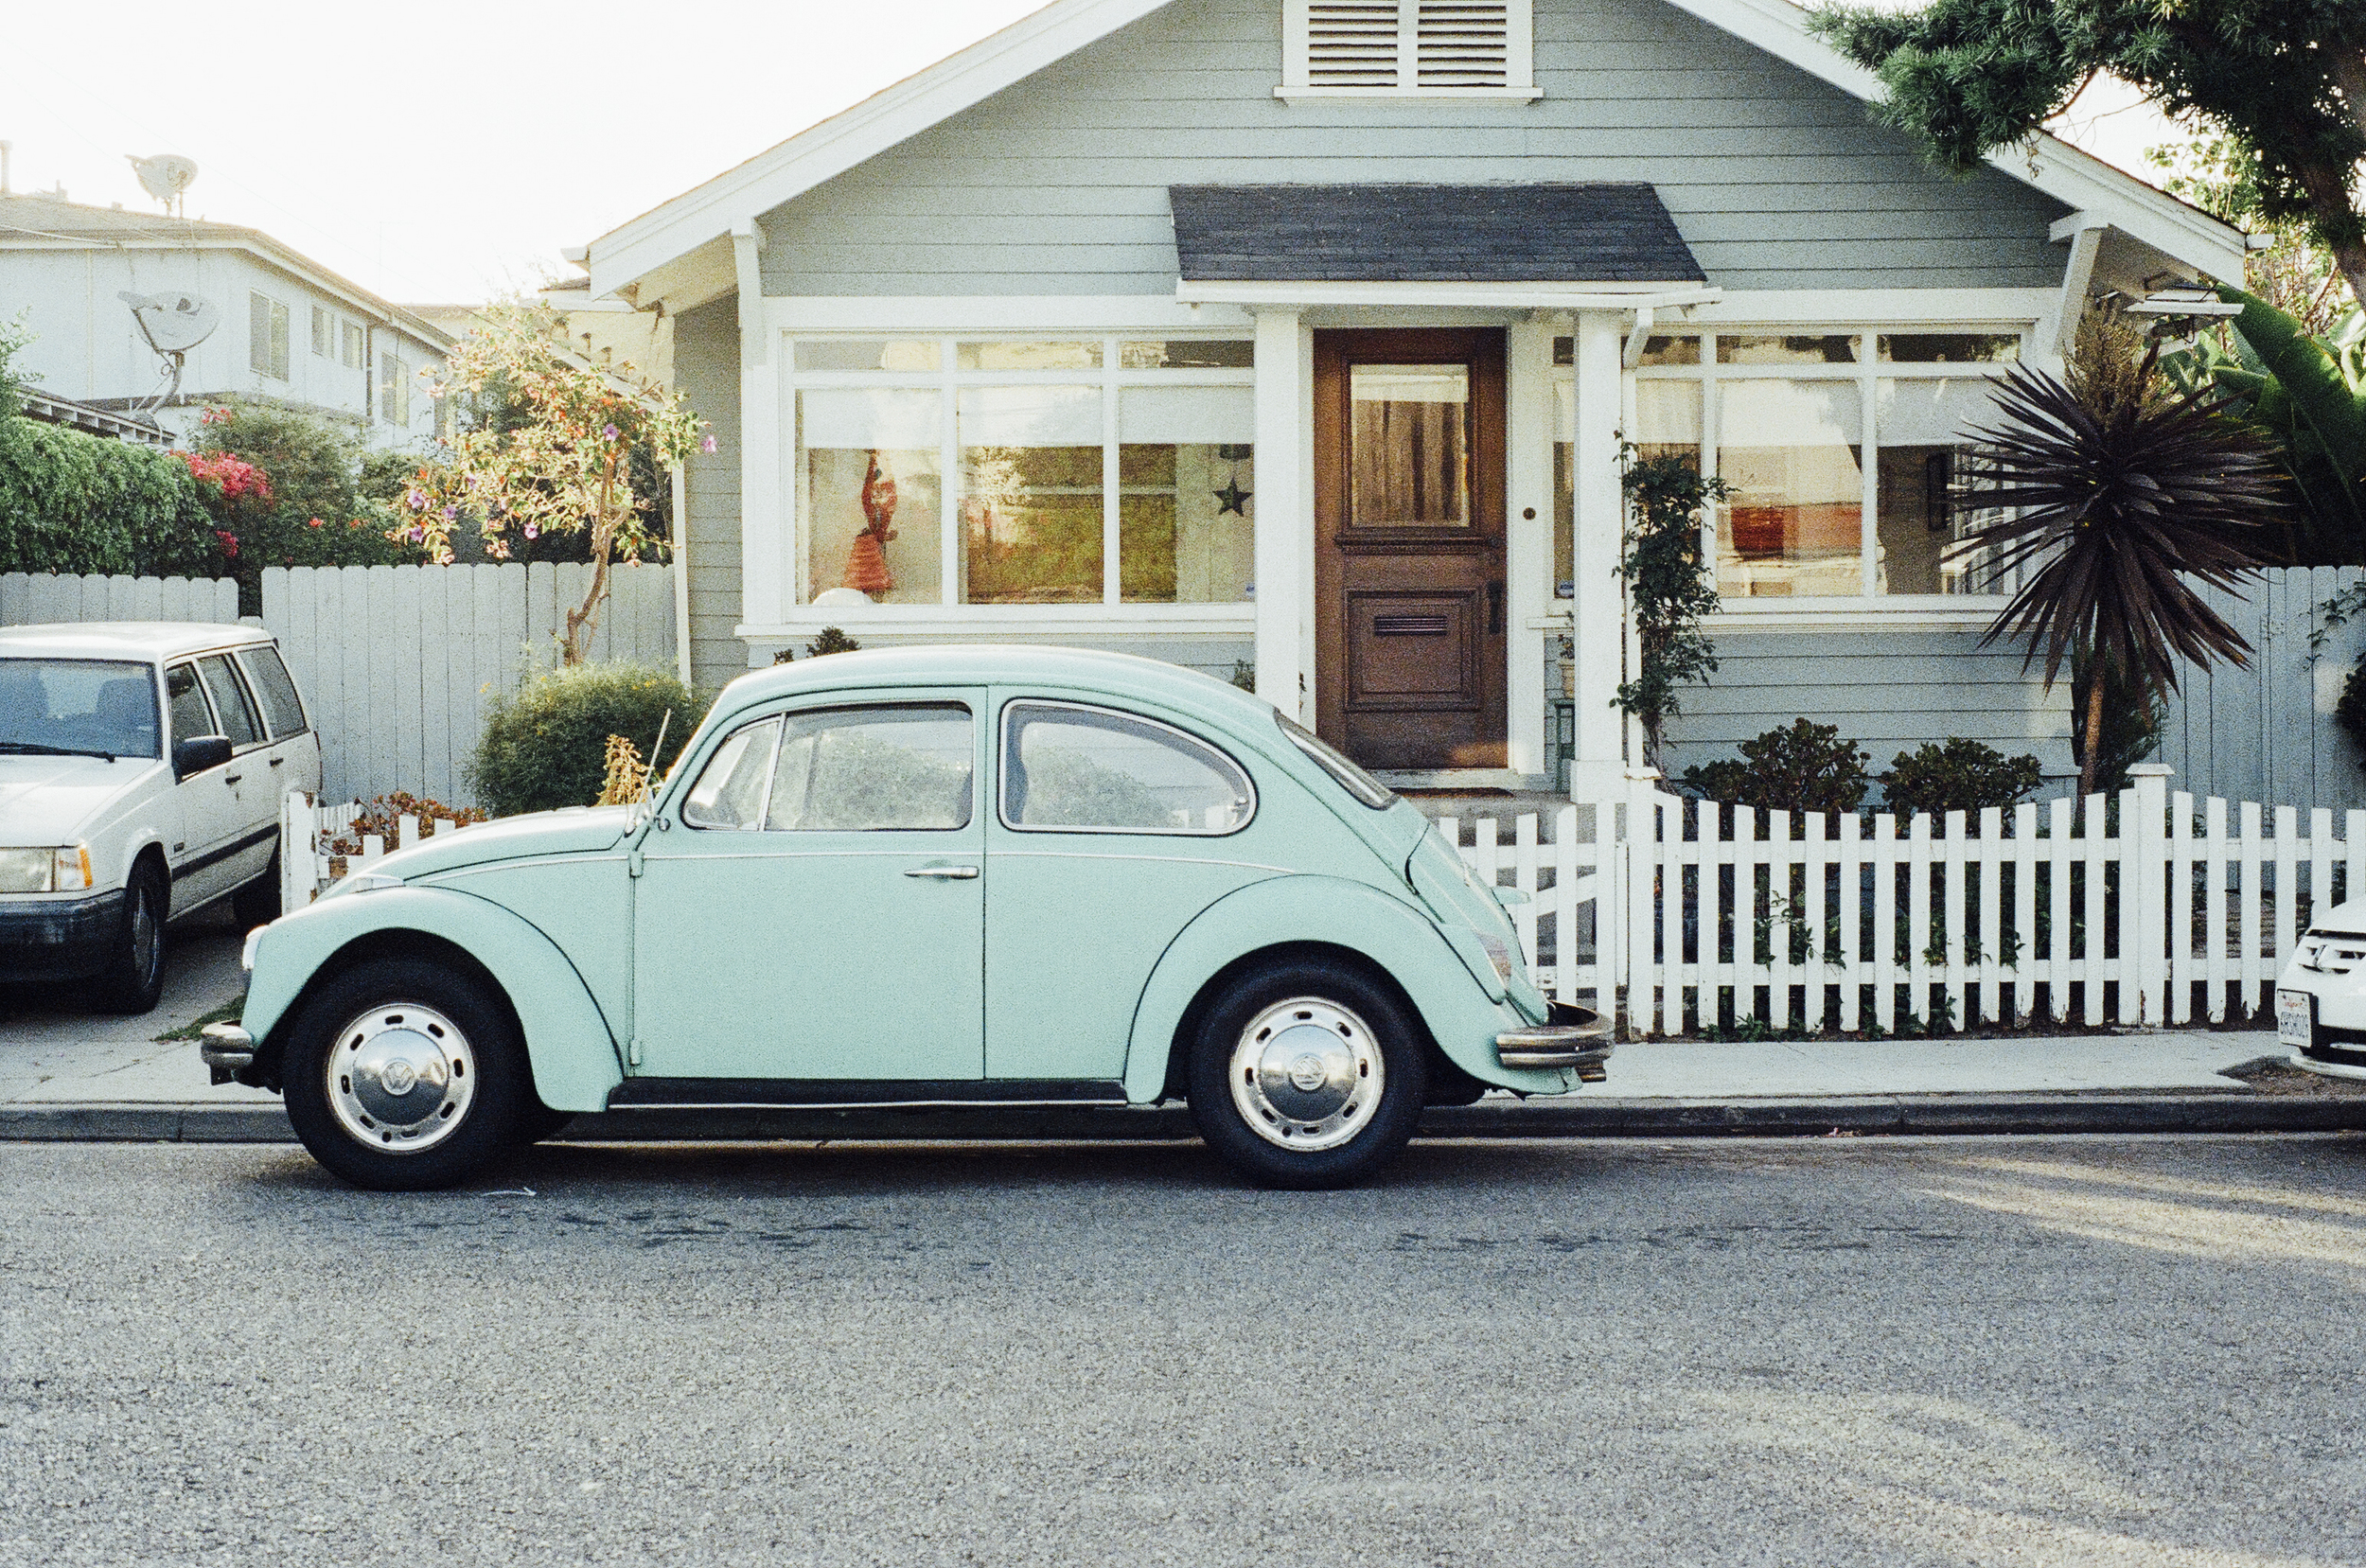 Beetle Car, House, White picket fence